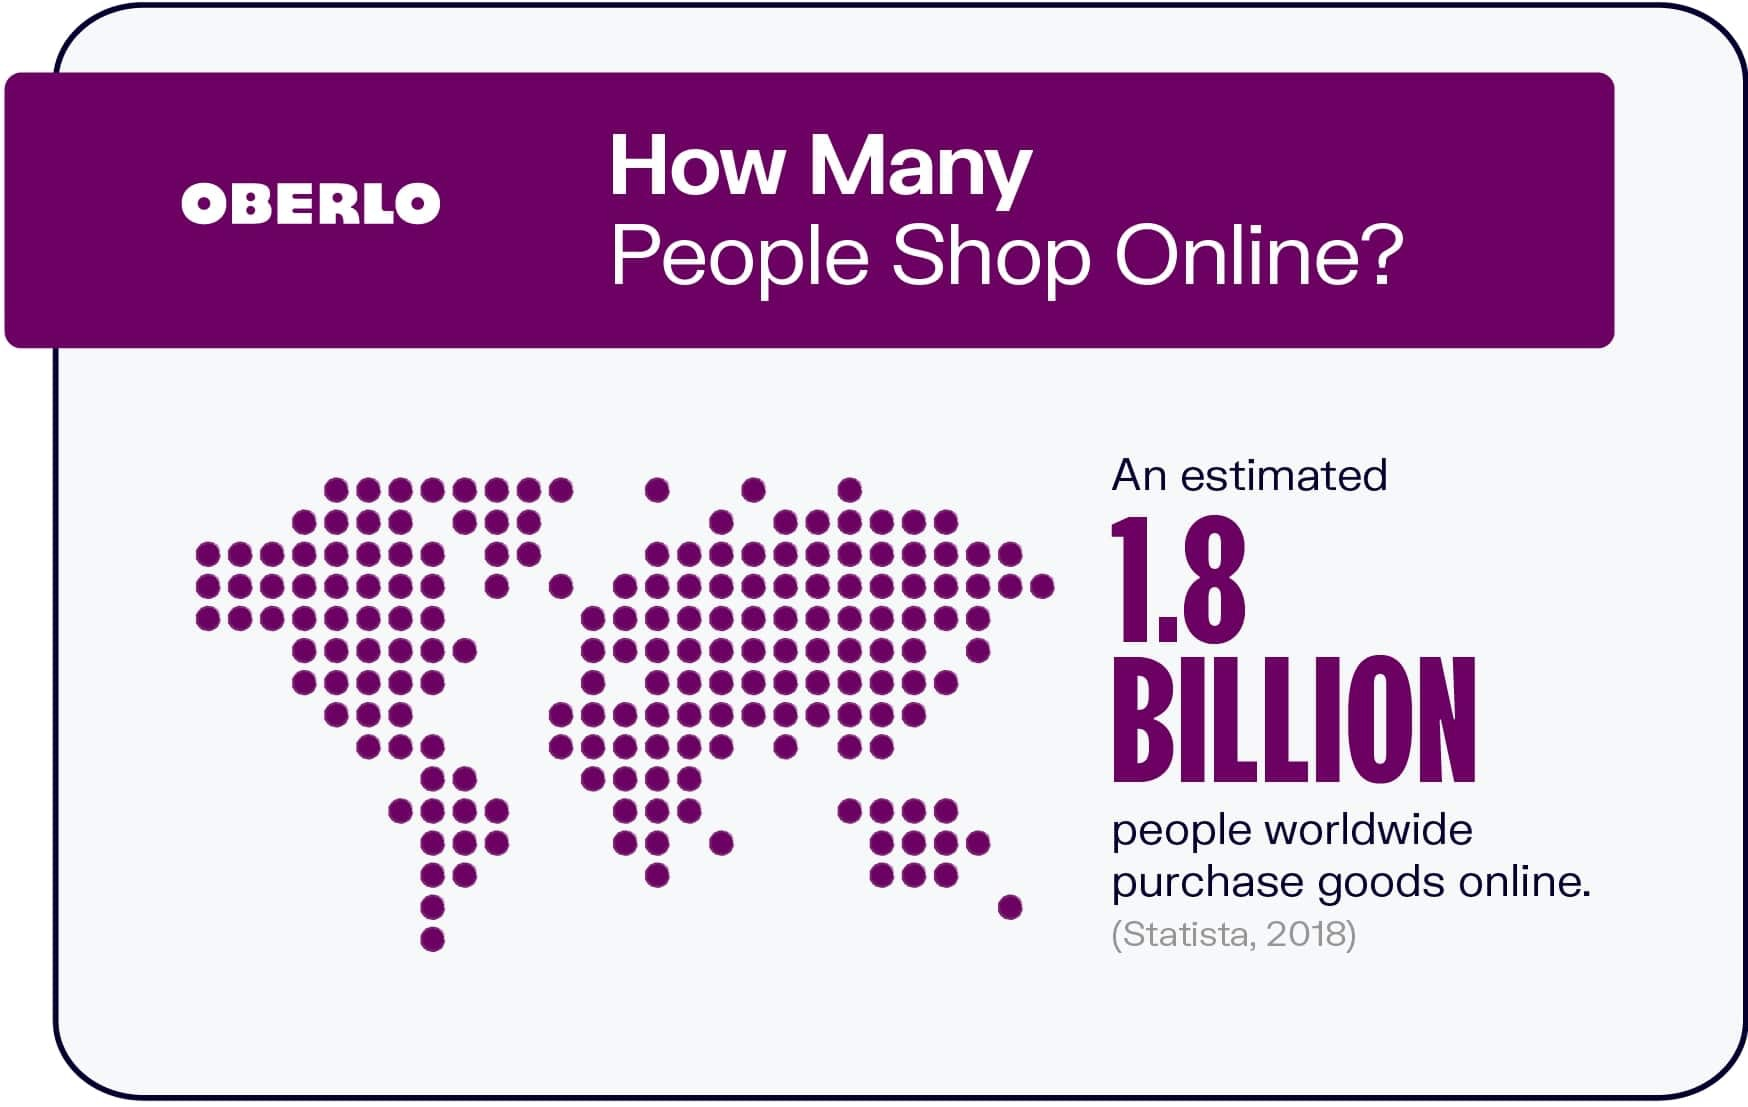 How Many People Shop Online?